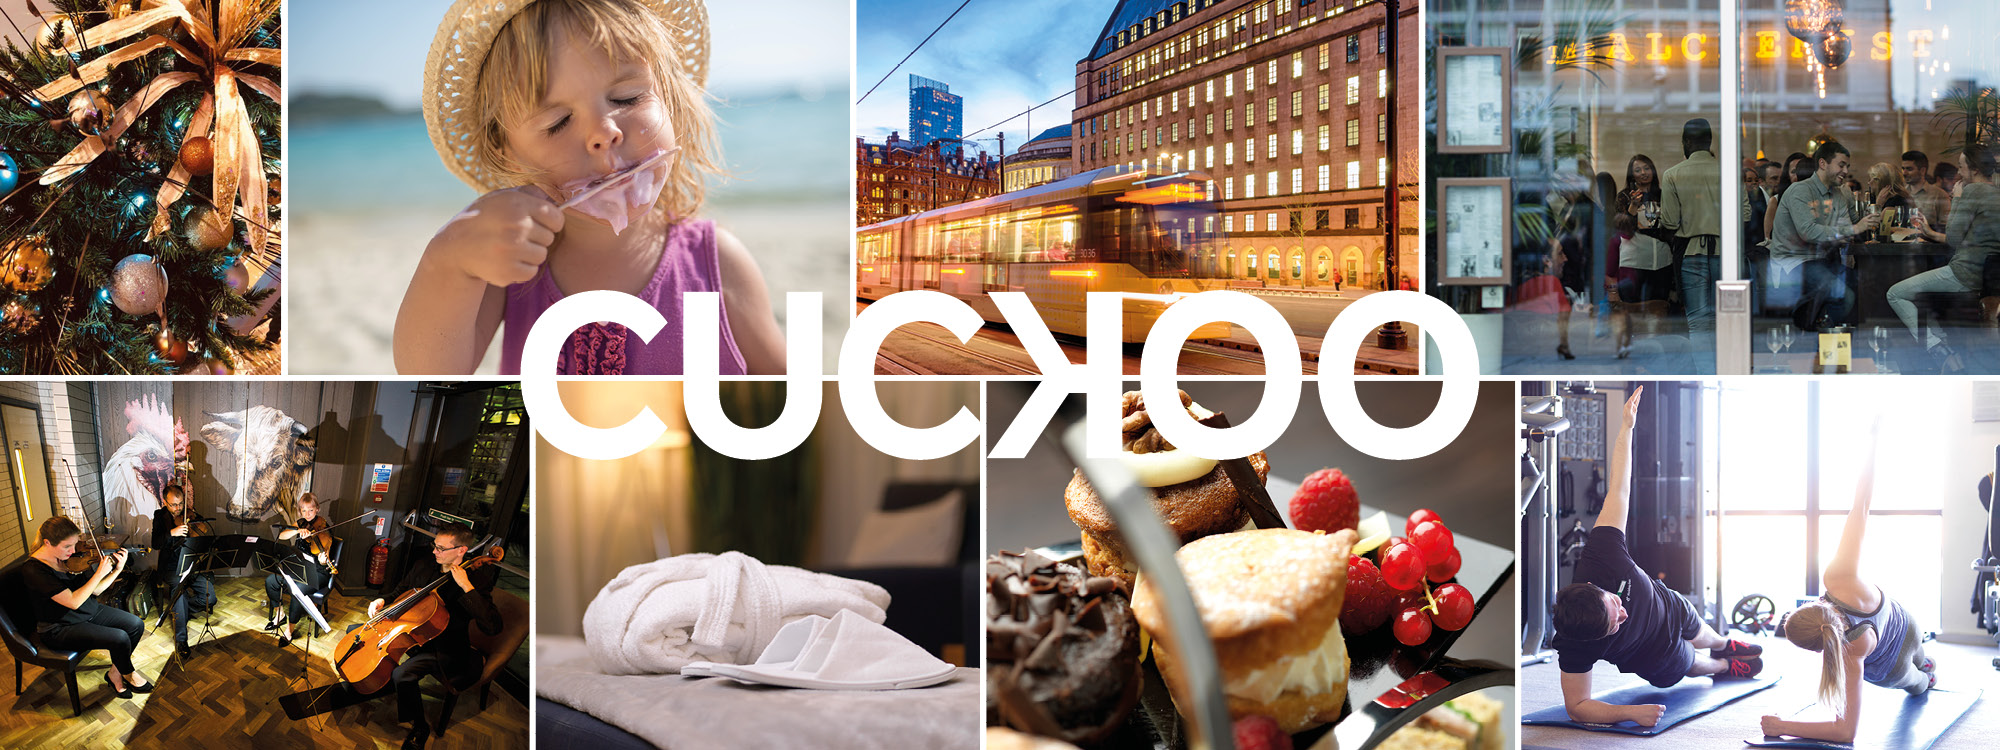 When it comes to travel, tourism and hospitality marketing. Nobody does it better than Cuckoo.